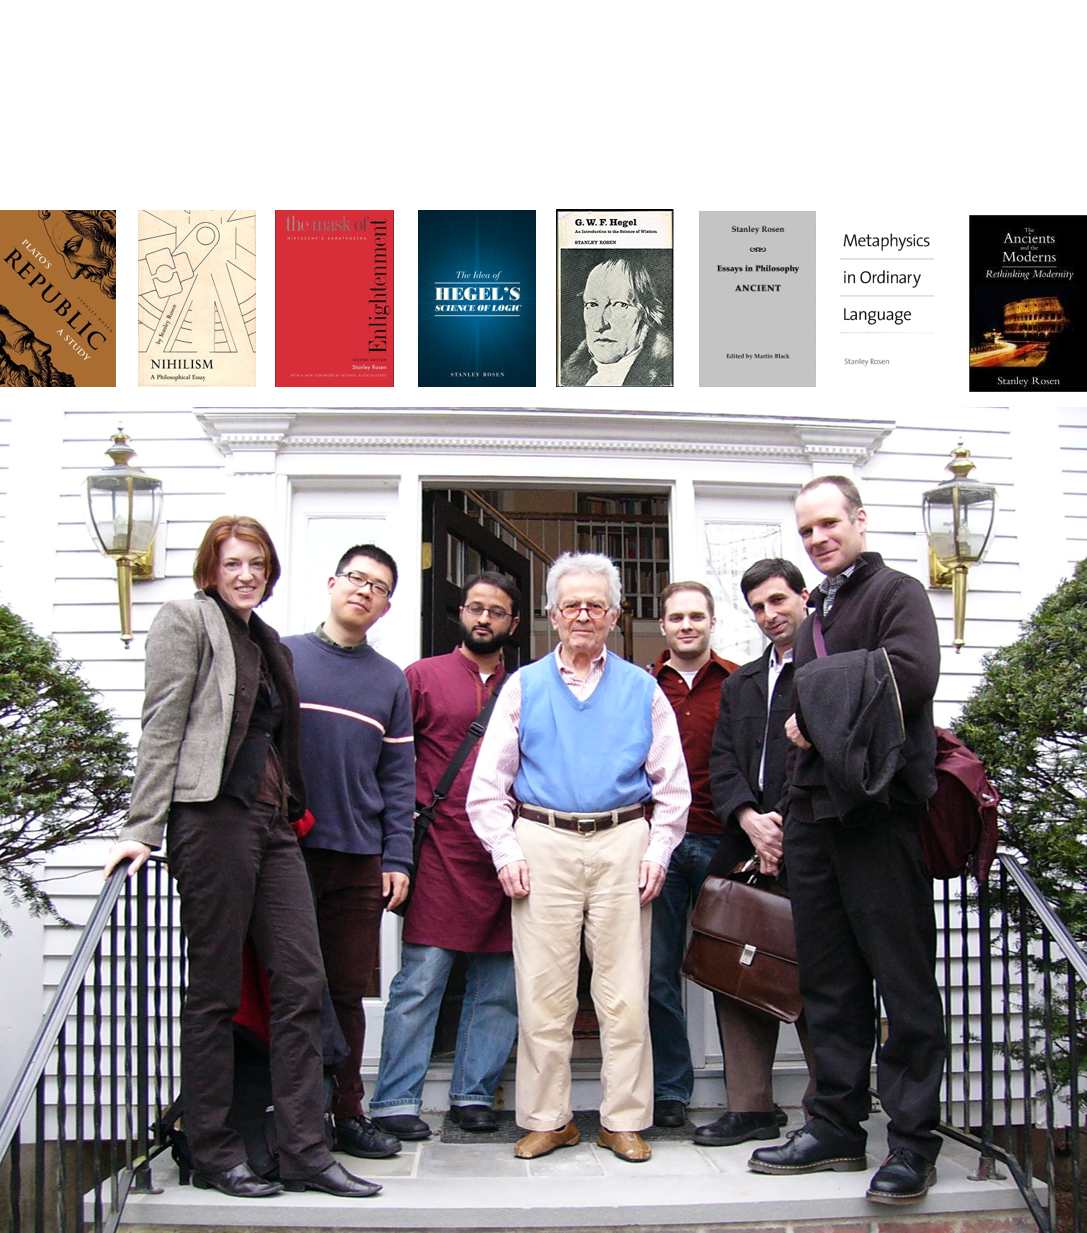 Professor Rosen and some of his graduate students in 2008 (at his summer reading group, on the  Theaetetus ): from left to right: Kirsten McKillop, Jiang Qian, Abdur Rahman, Stanley Rosen, John Burmeister, Andy German, and Martin Black.